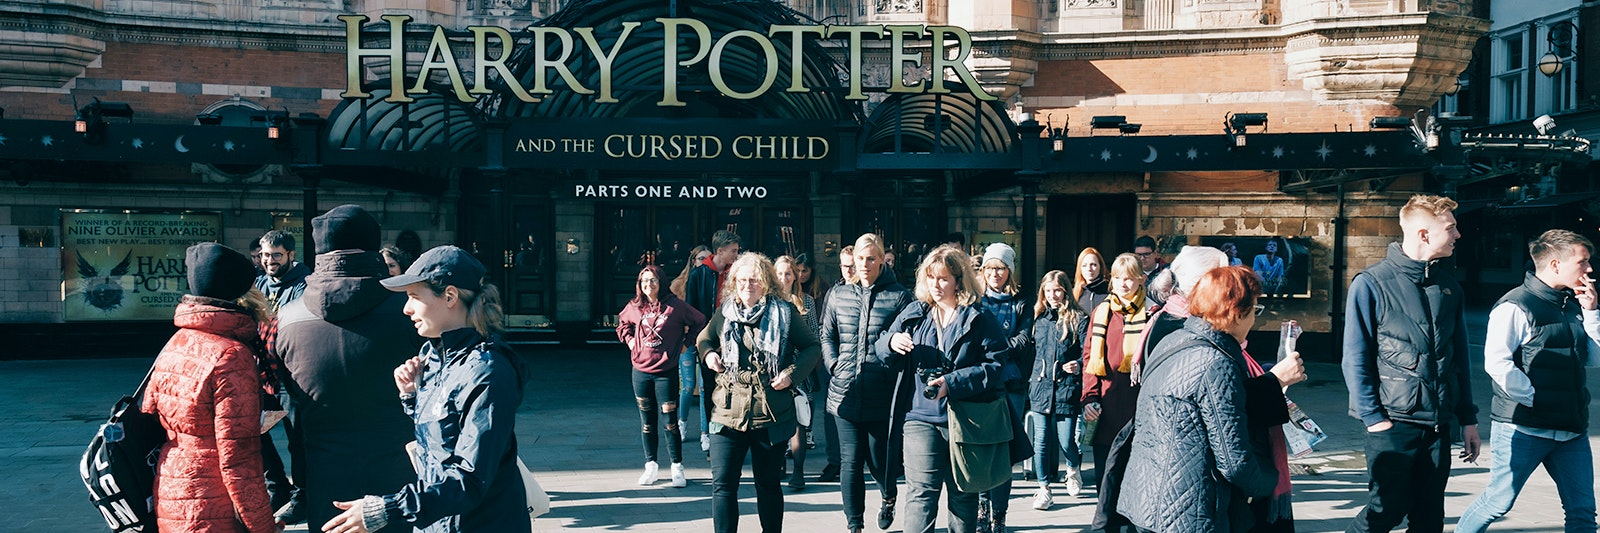 tour a piedi di harry potter